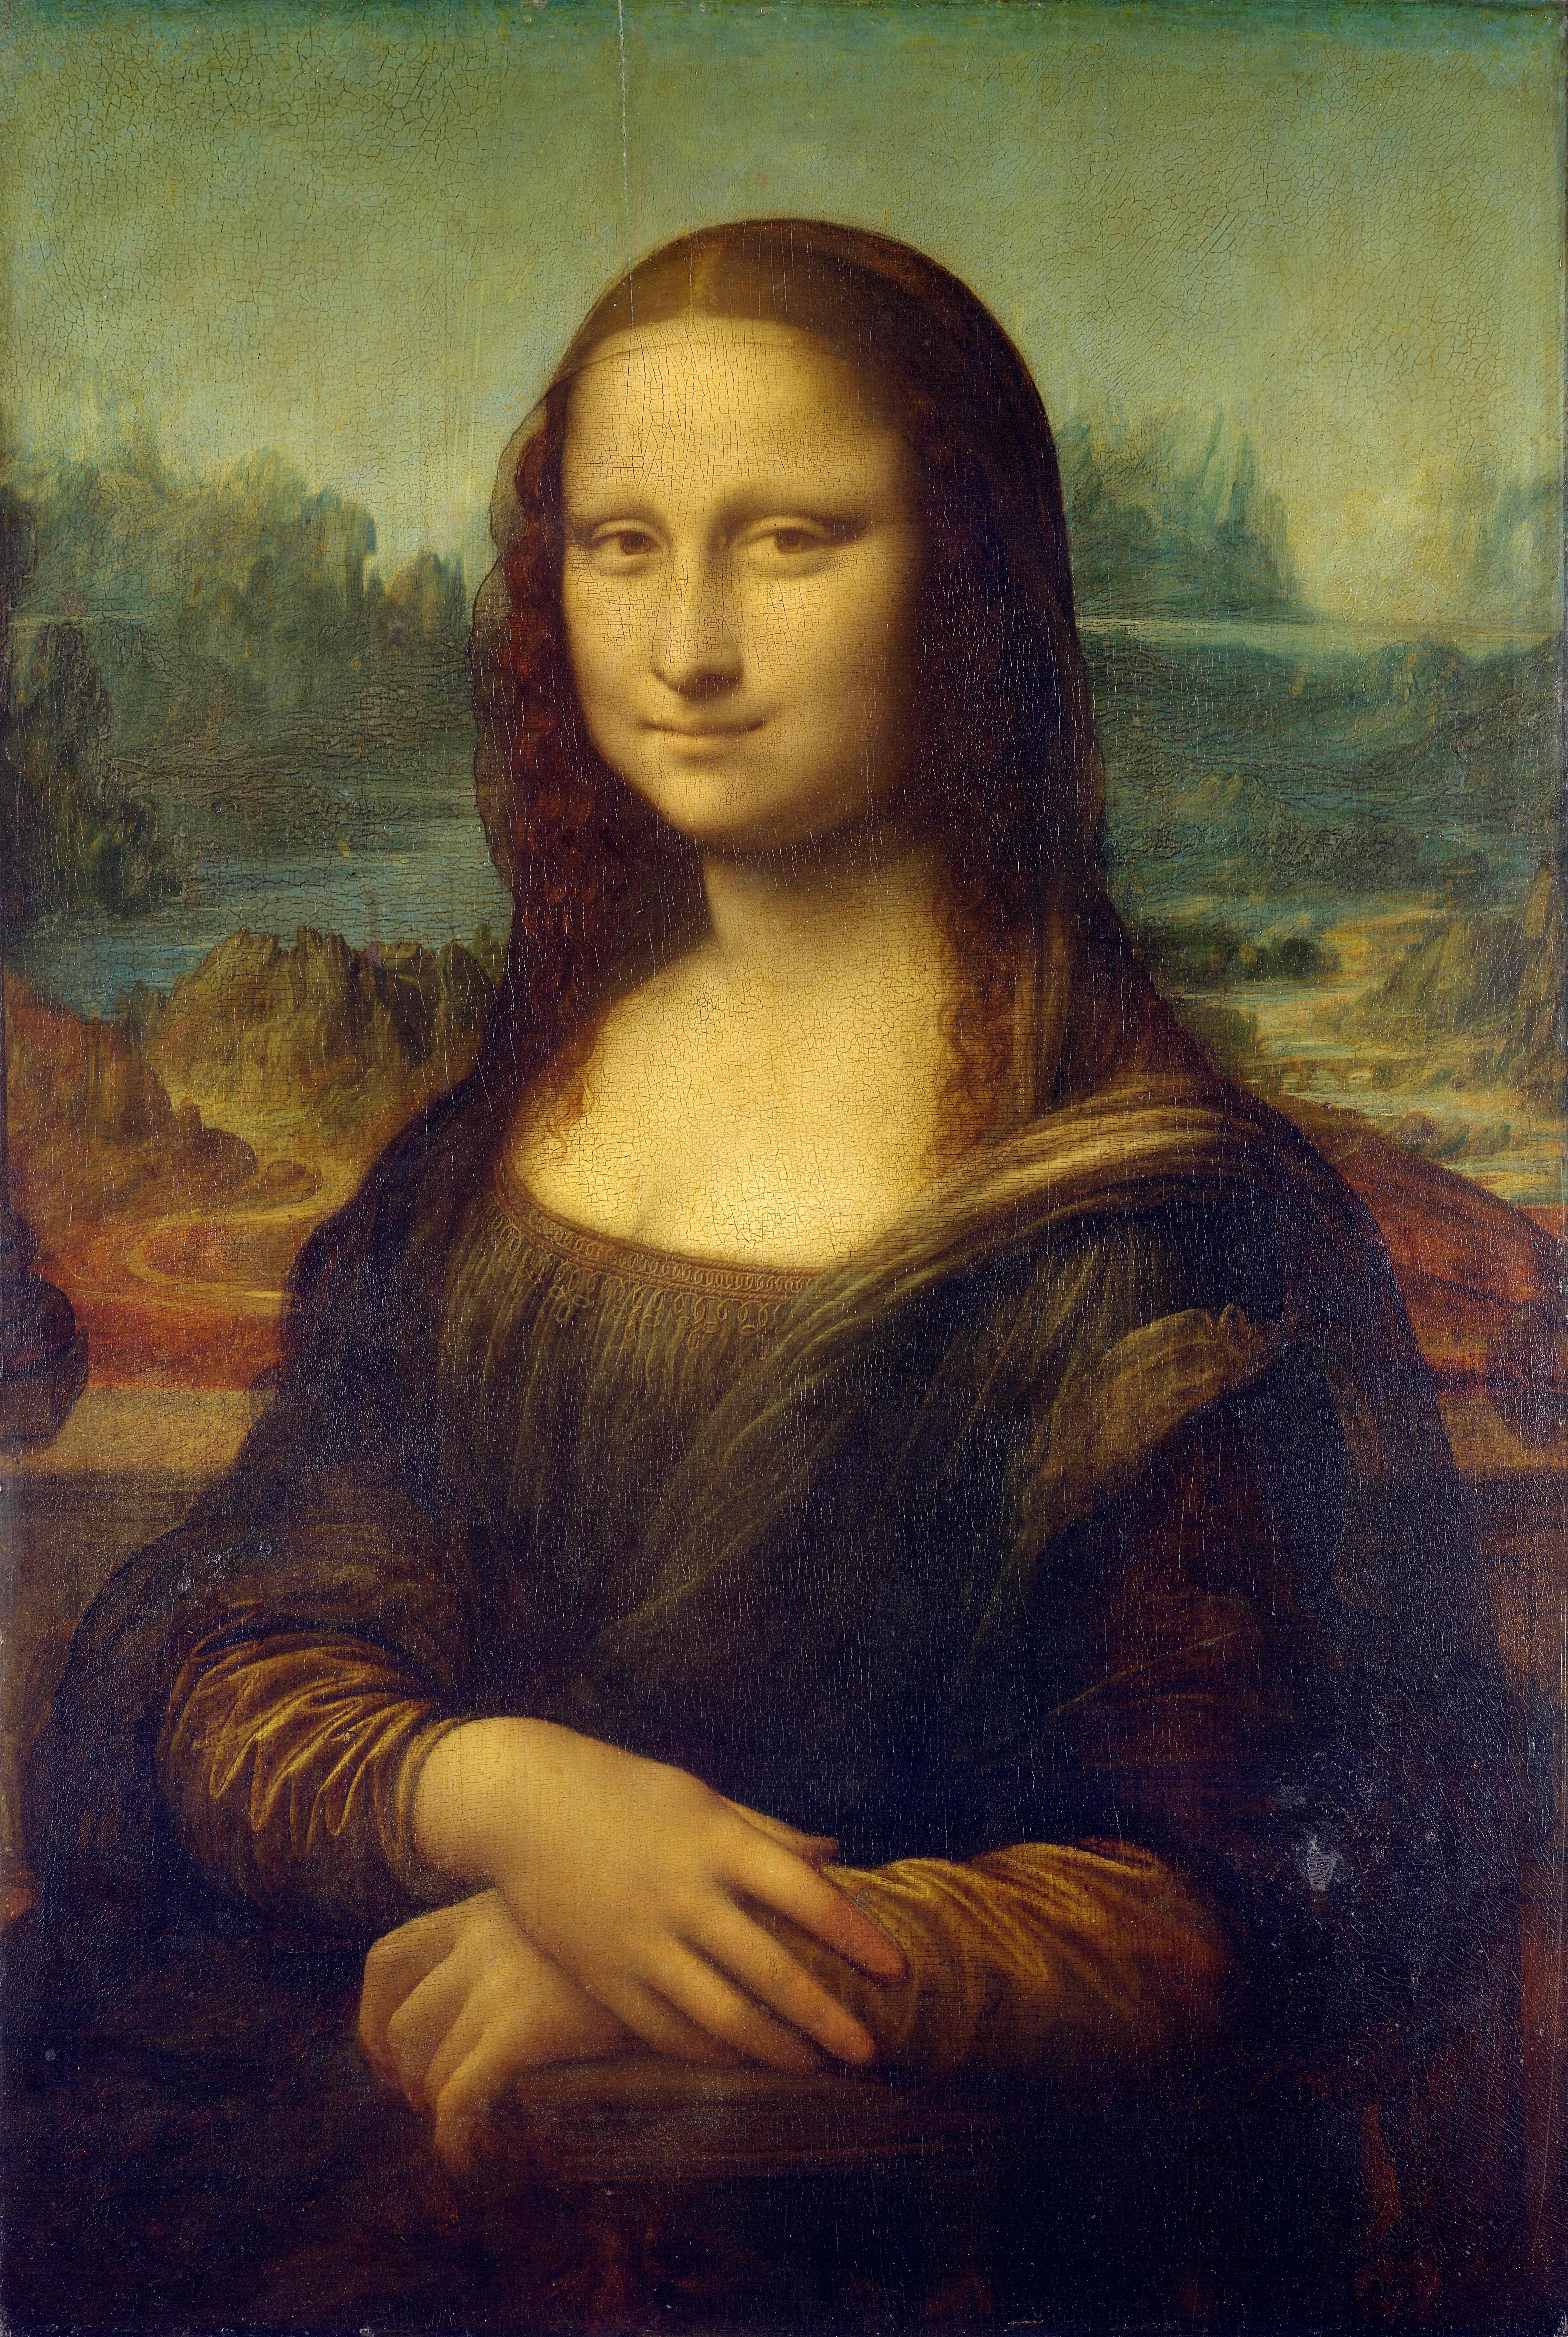 he skin of the Mona Lisa is painted with a layer of green underneath in Mona Lisa of Leonardo Da Vinci (1503)